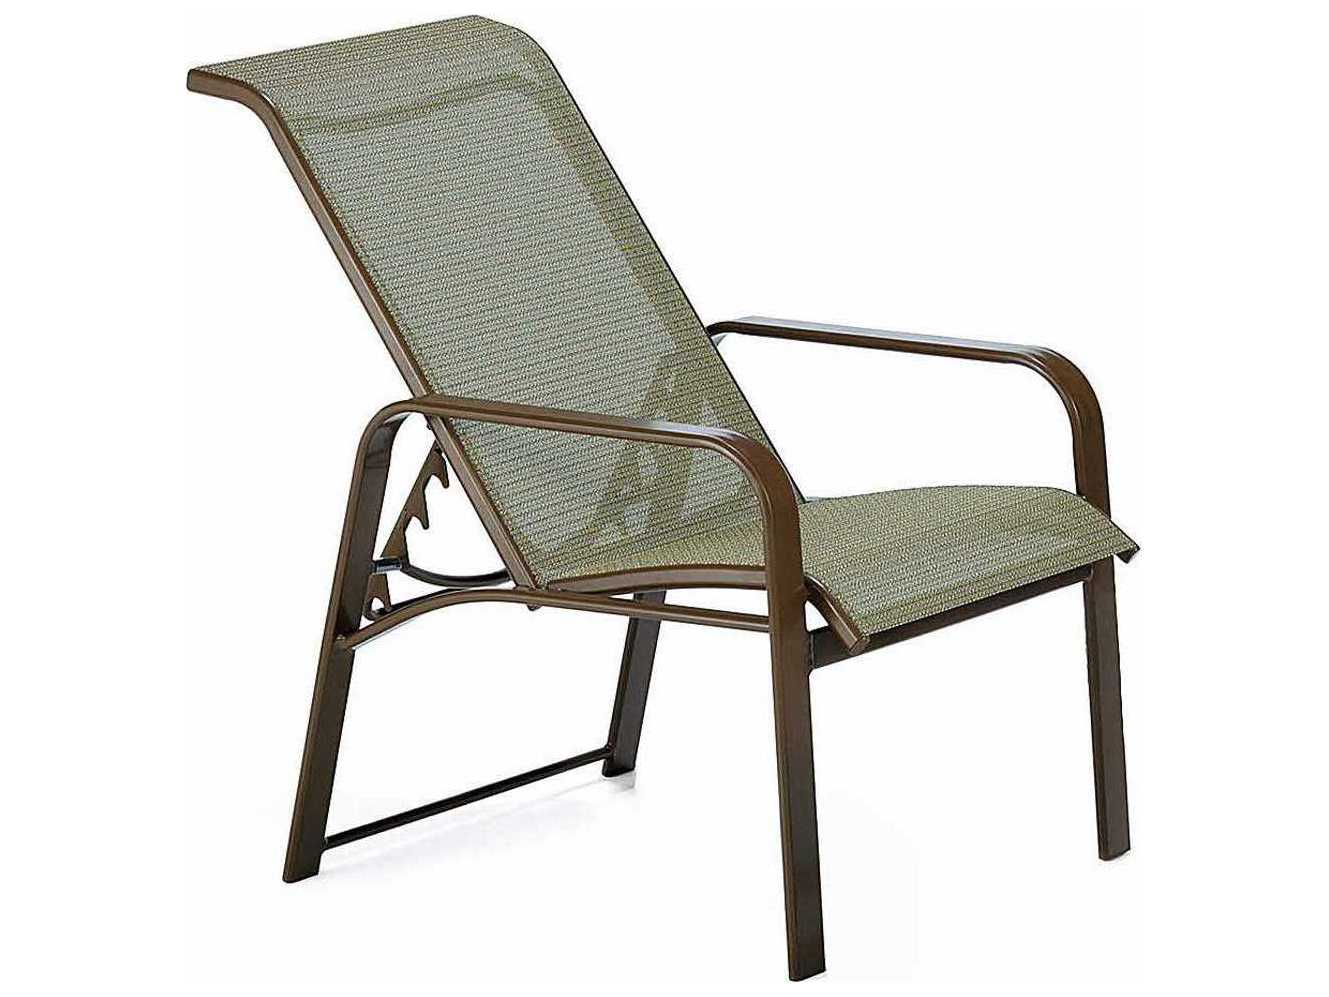 Winston Seagrove Ii Sling Aluminum Adjustable Chair Wsm62017